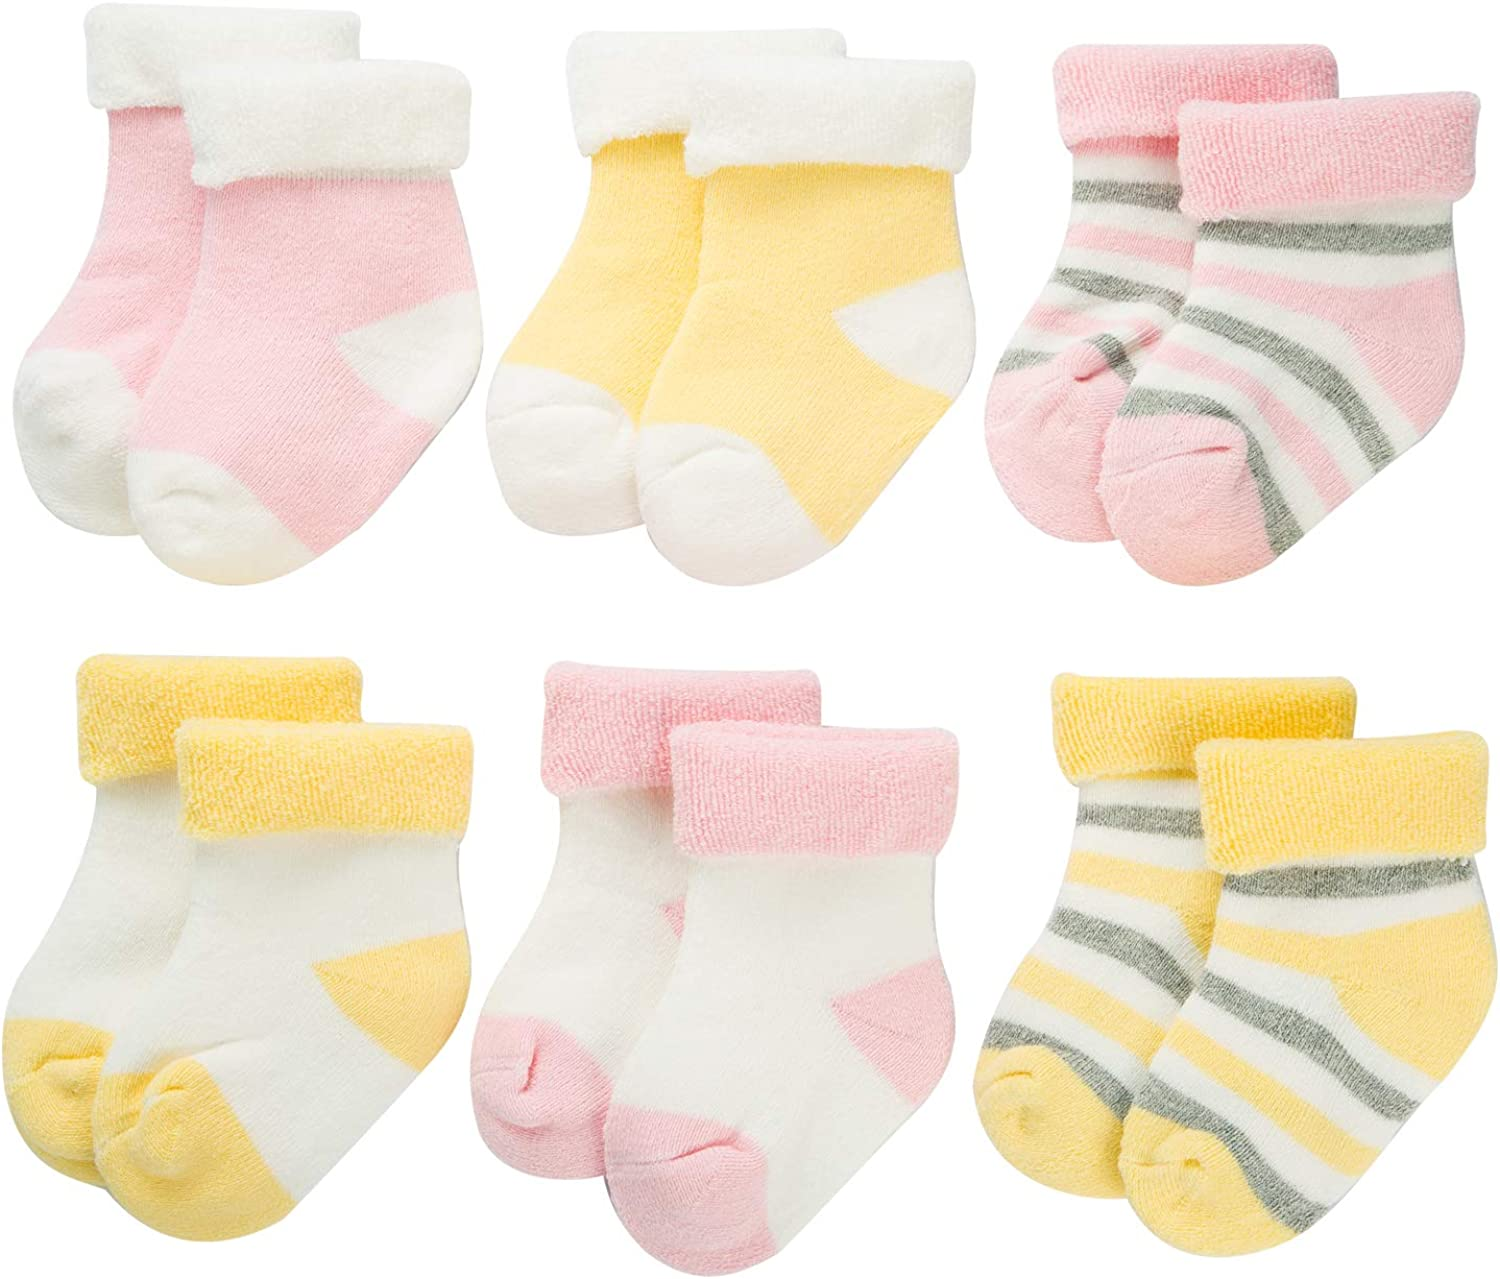 6 Pairs Cute Warm Baby Welcome Party Gift Sets Funny Winter Baby Infants Newborn Towels Socks For 0-6/6-12 Months